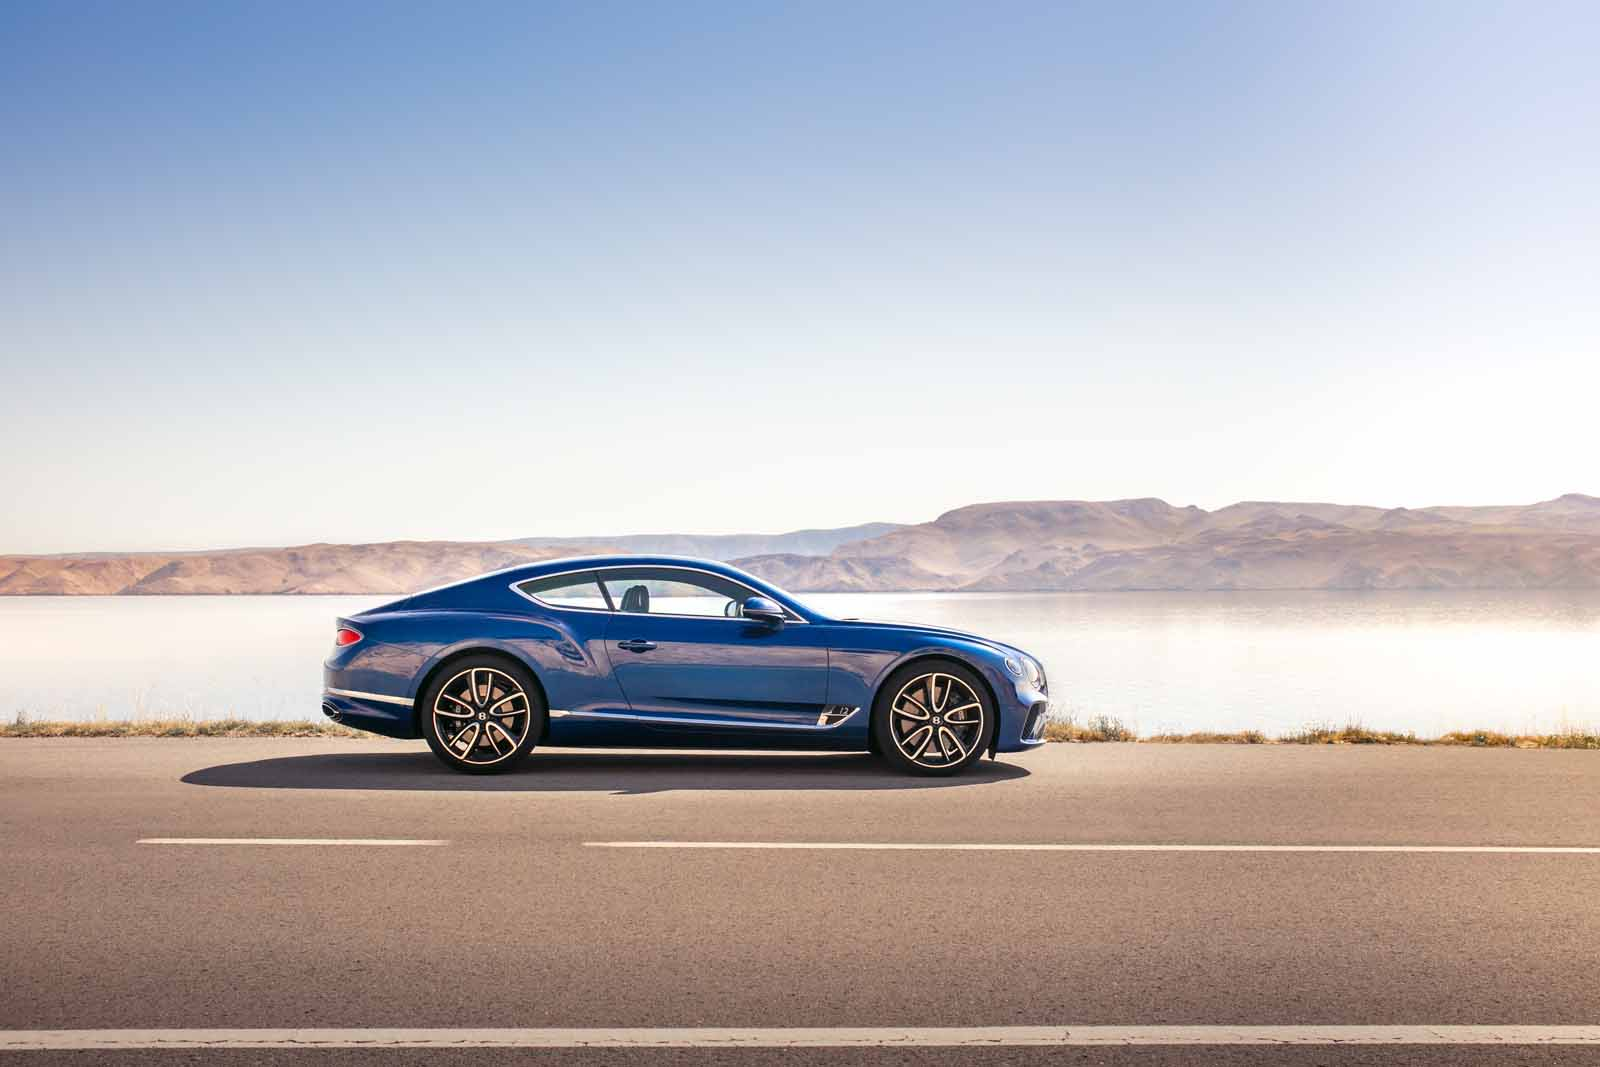 Charming 2018 Bentley Continental GT Aims To Be The Ultimate Grand Tourer